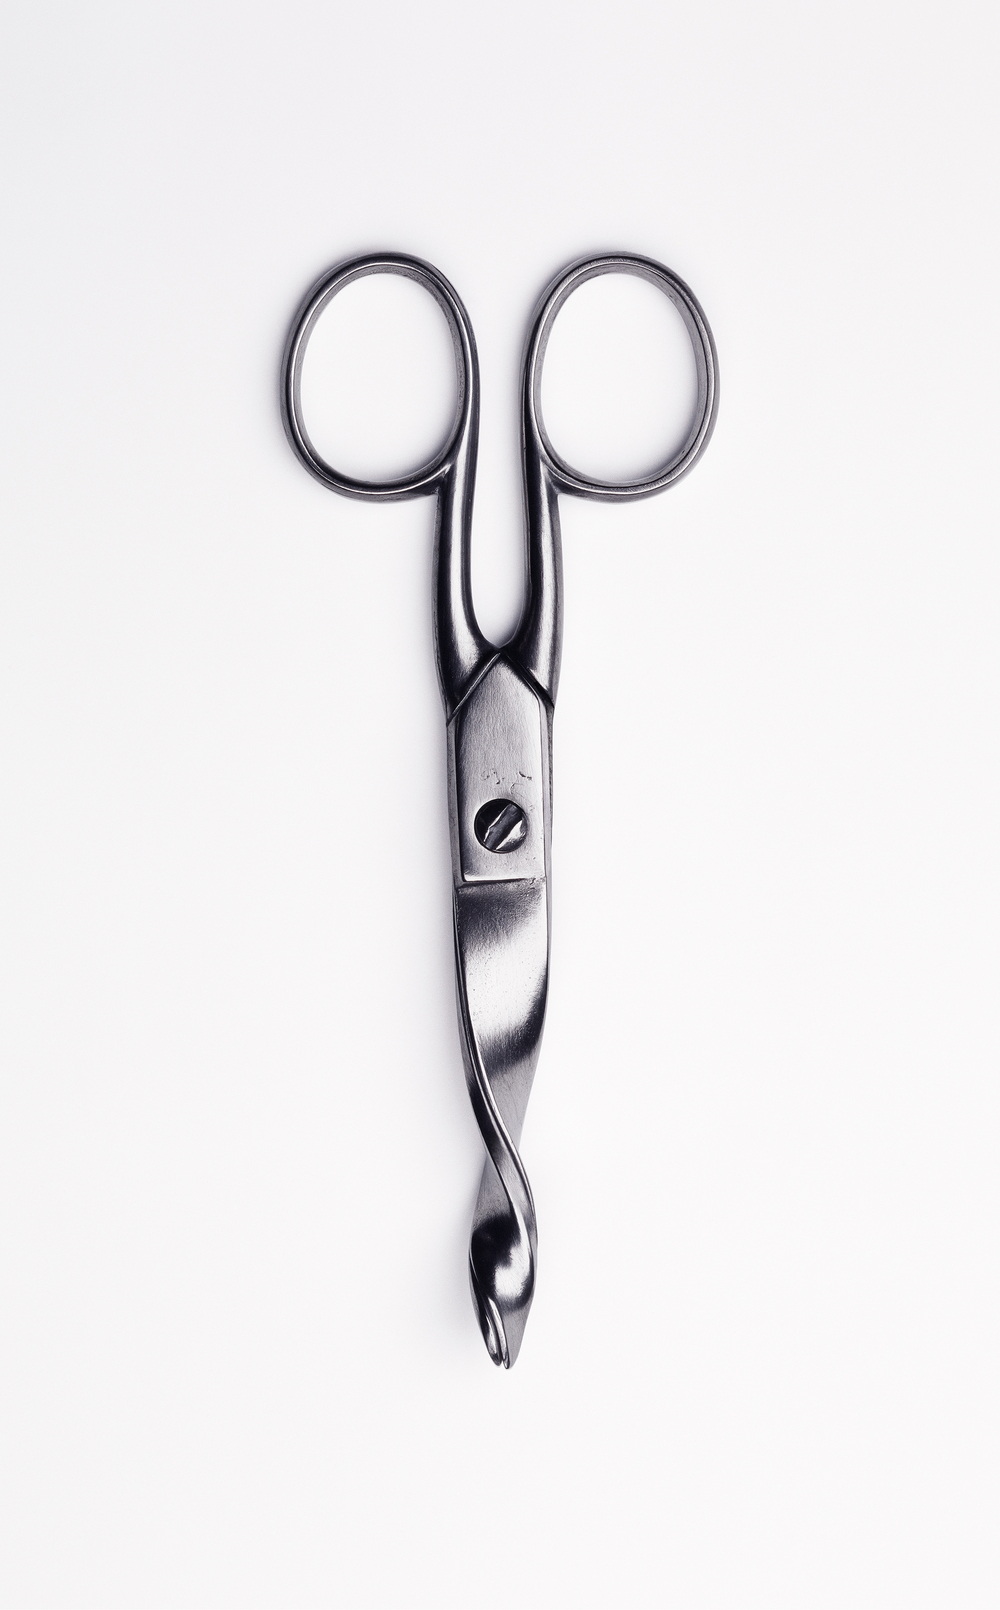 Twisted Scissors